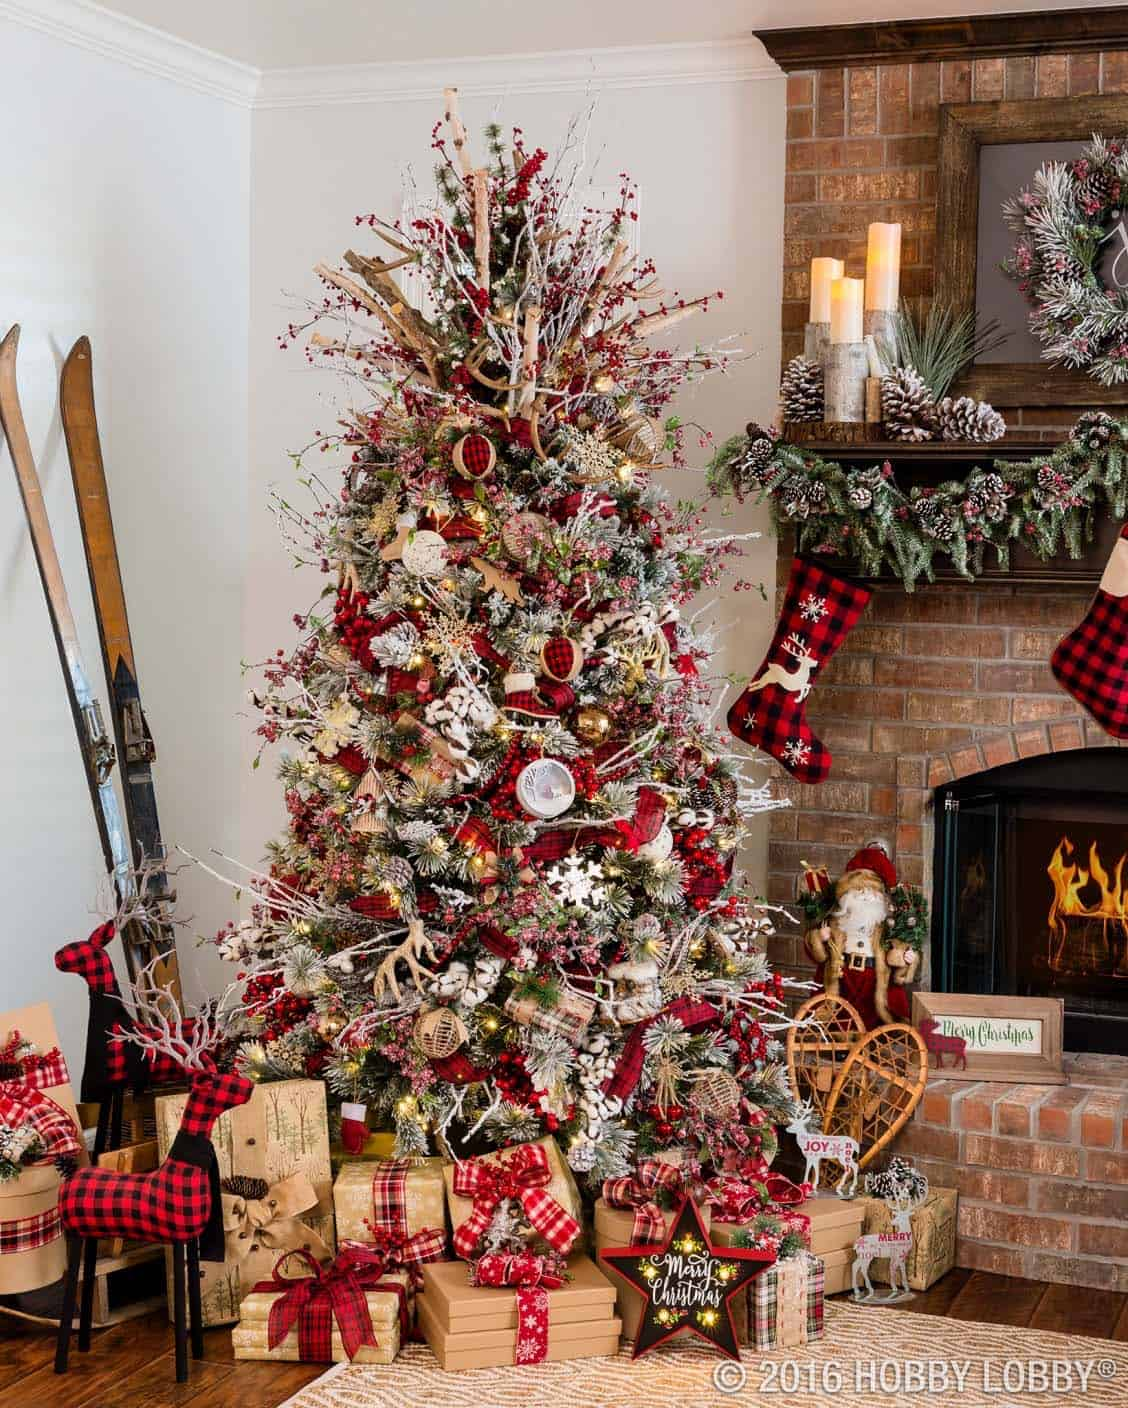 30 most amazing christmas decorated trees for some holiday sparkle. Black Bedroom Furniture Sets. Home Design Ideas